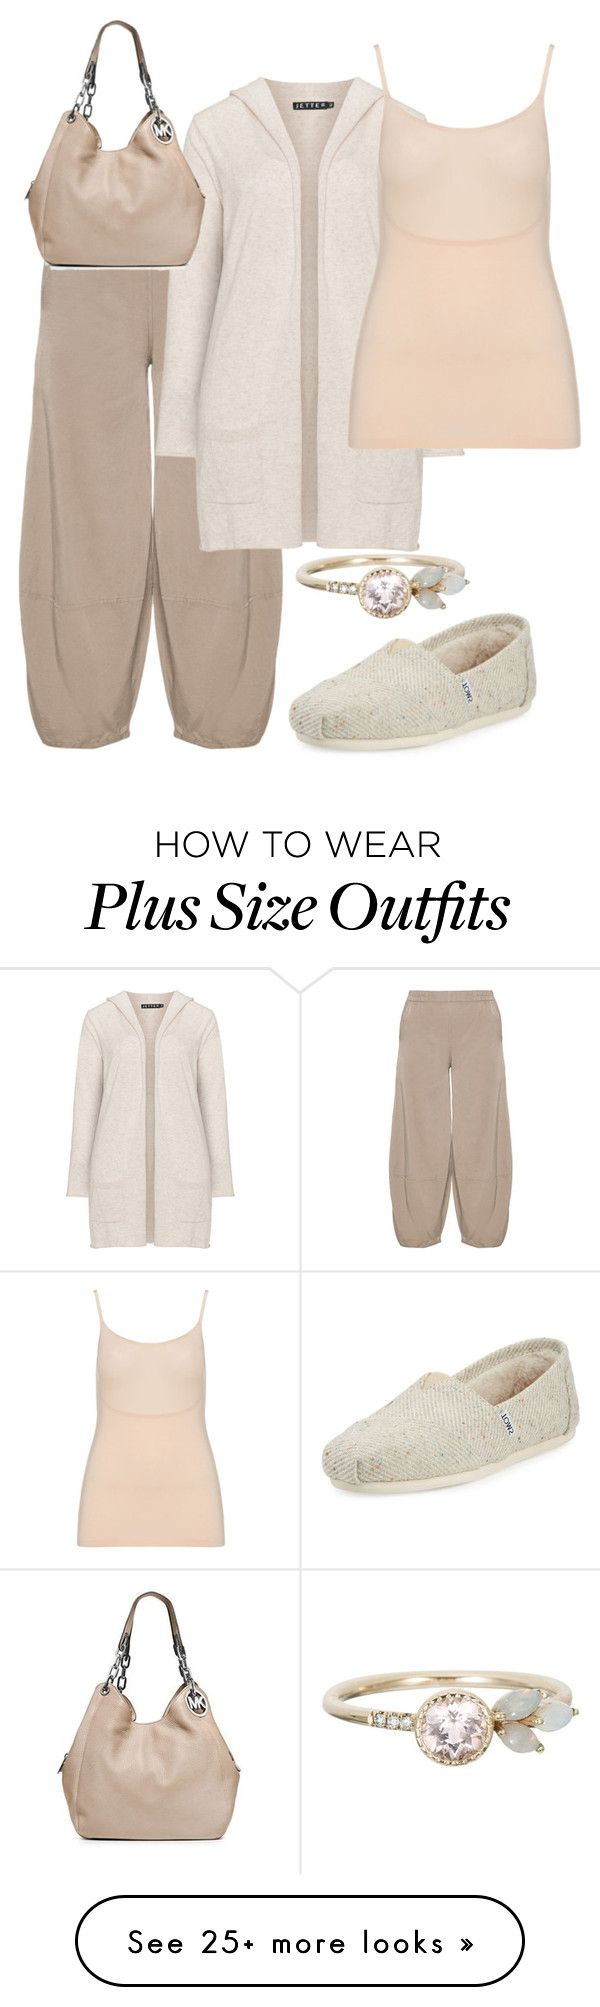 """plus size sherry"" by aleger-1 on Polyvore featuring Kekoo, Jette, TOMS, SPANX and MICHAEL Michael Kors"